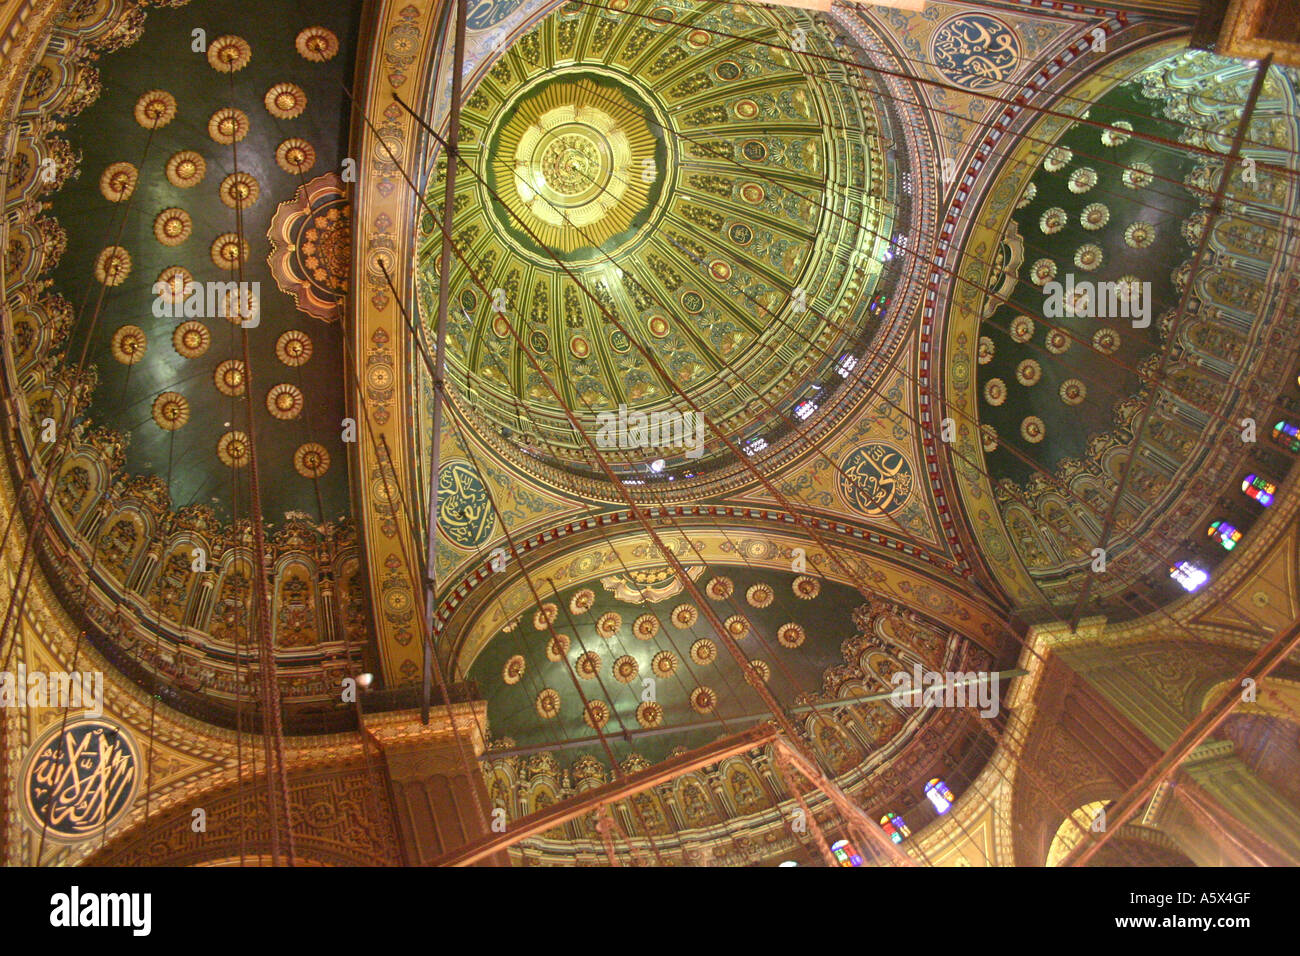 The intricate arabesque domes at the Citadel mosque in Cairo - Stock Image